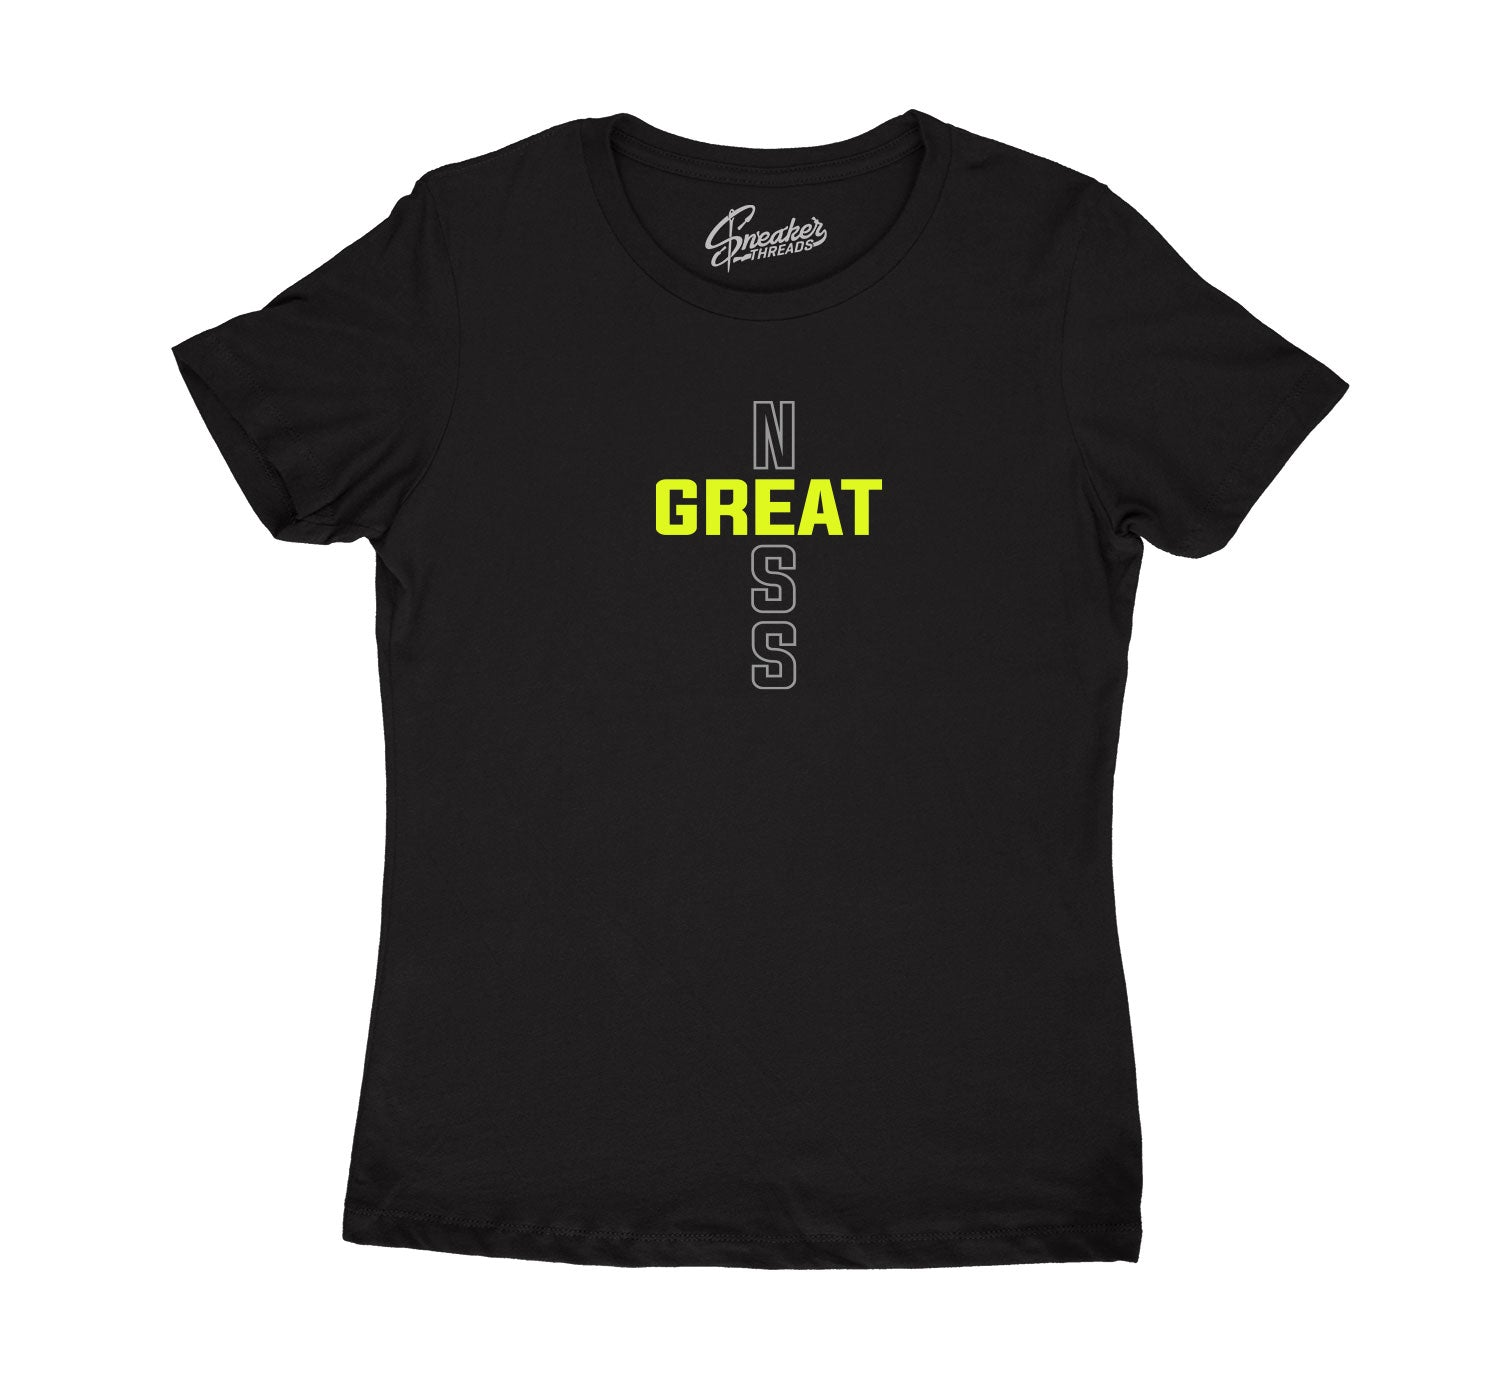 Womens Neon 4 Shirt - Greatness Cross - Black